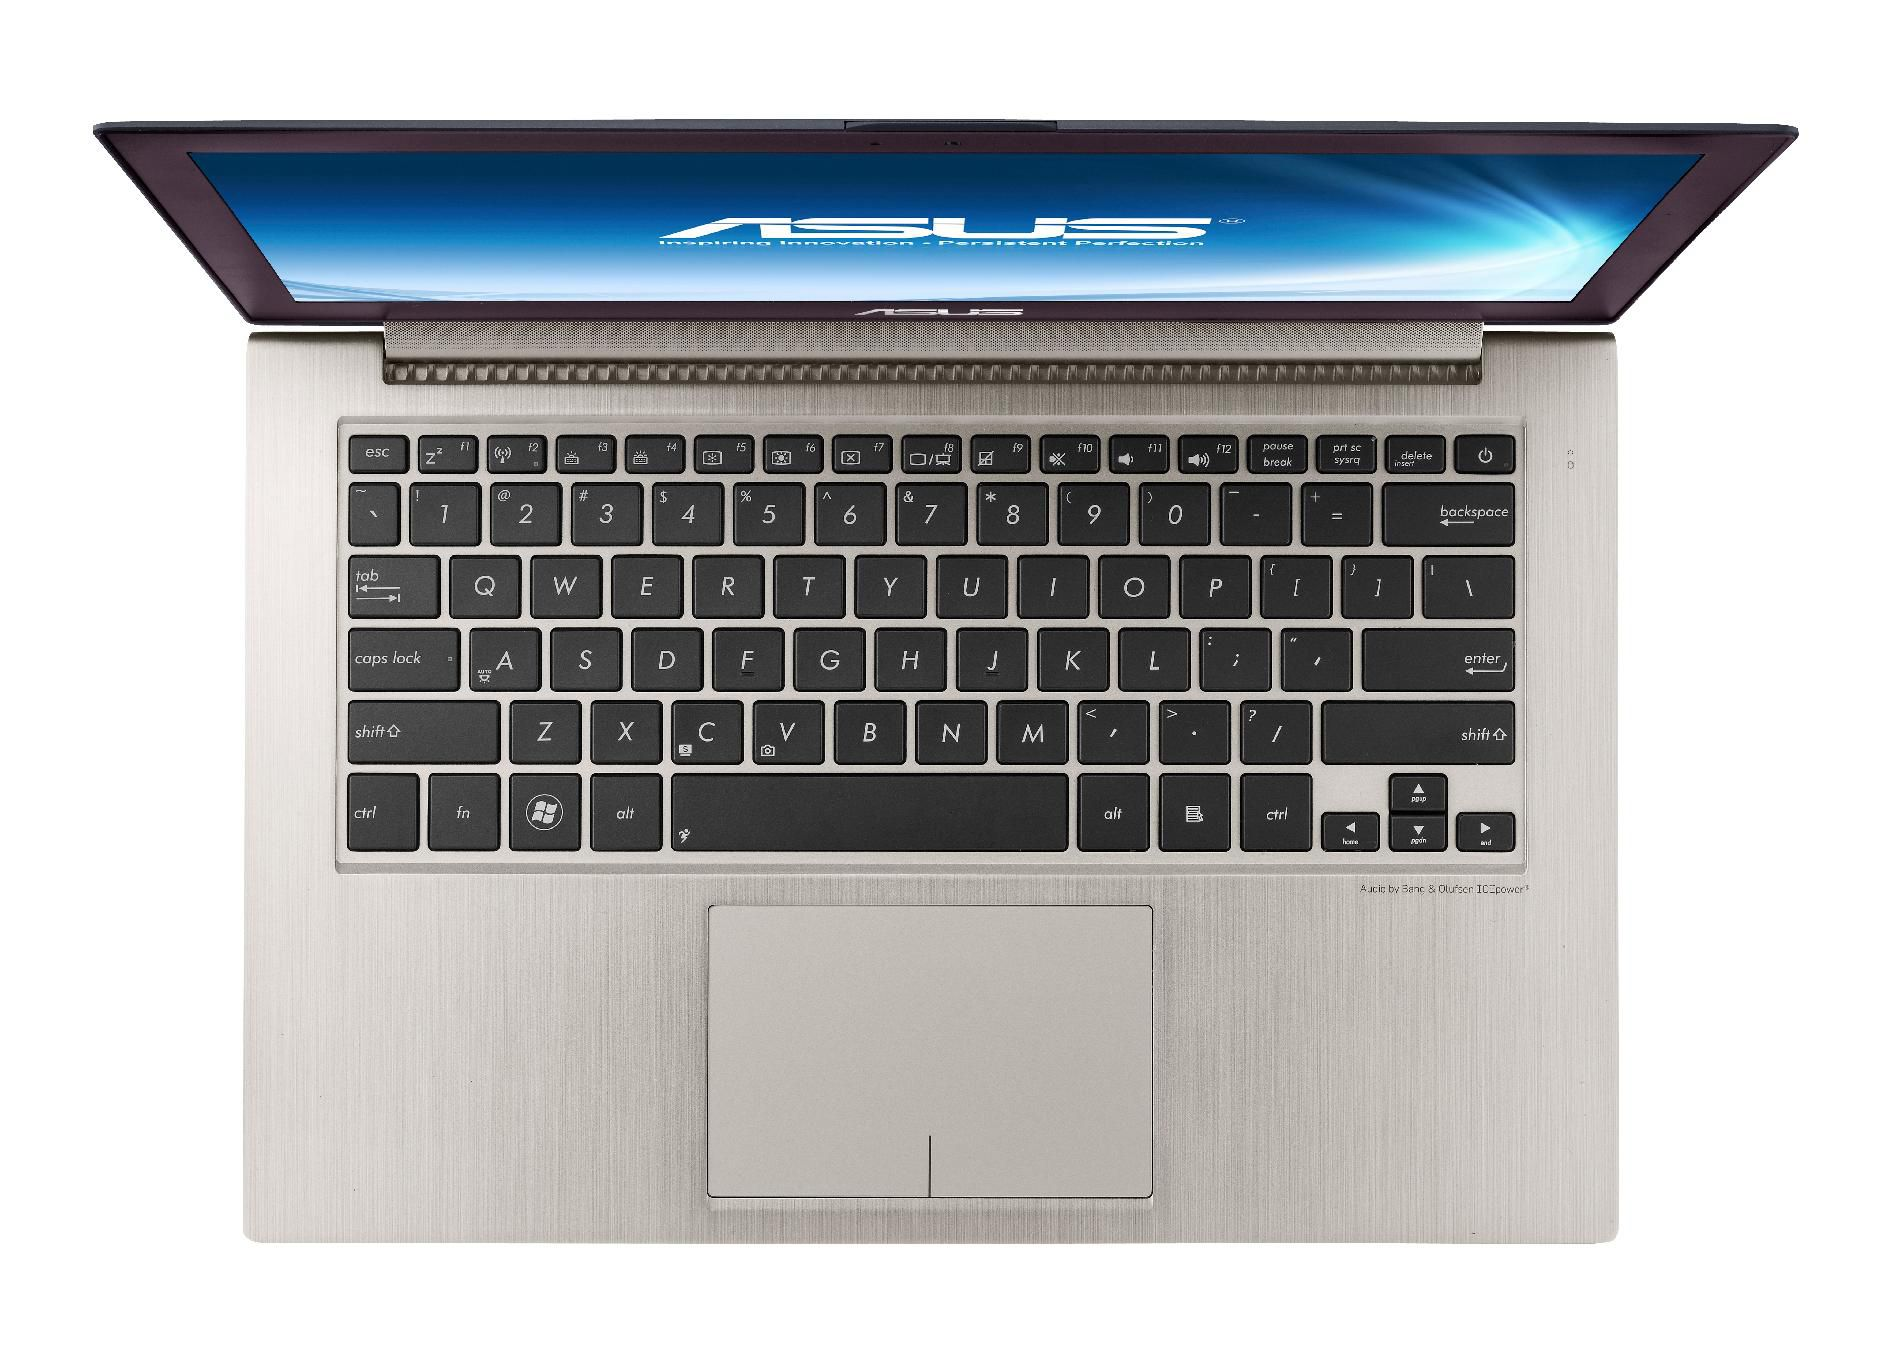 "Asus 13.3"" Zenbook Ultrabook w/ Intel Core i3-2367M 4GB 500GB 24GB SSD Microsoft Windows 7 64-Bit (UX32A-R3502H)"